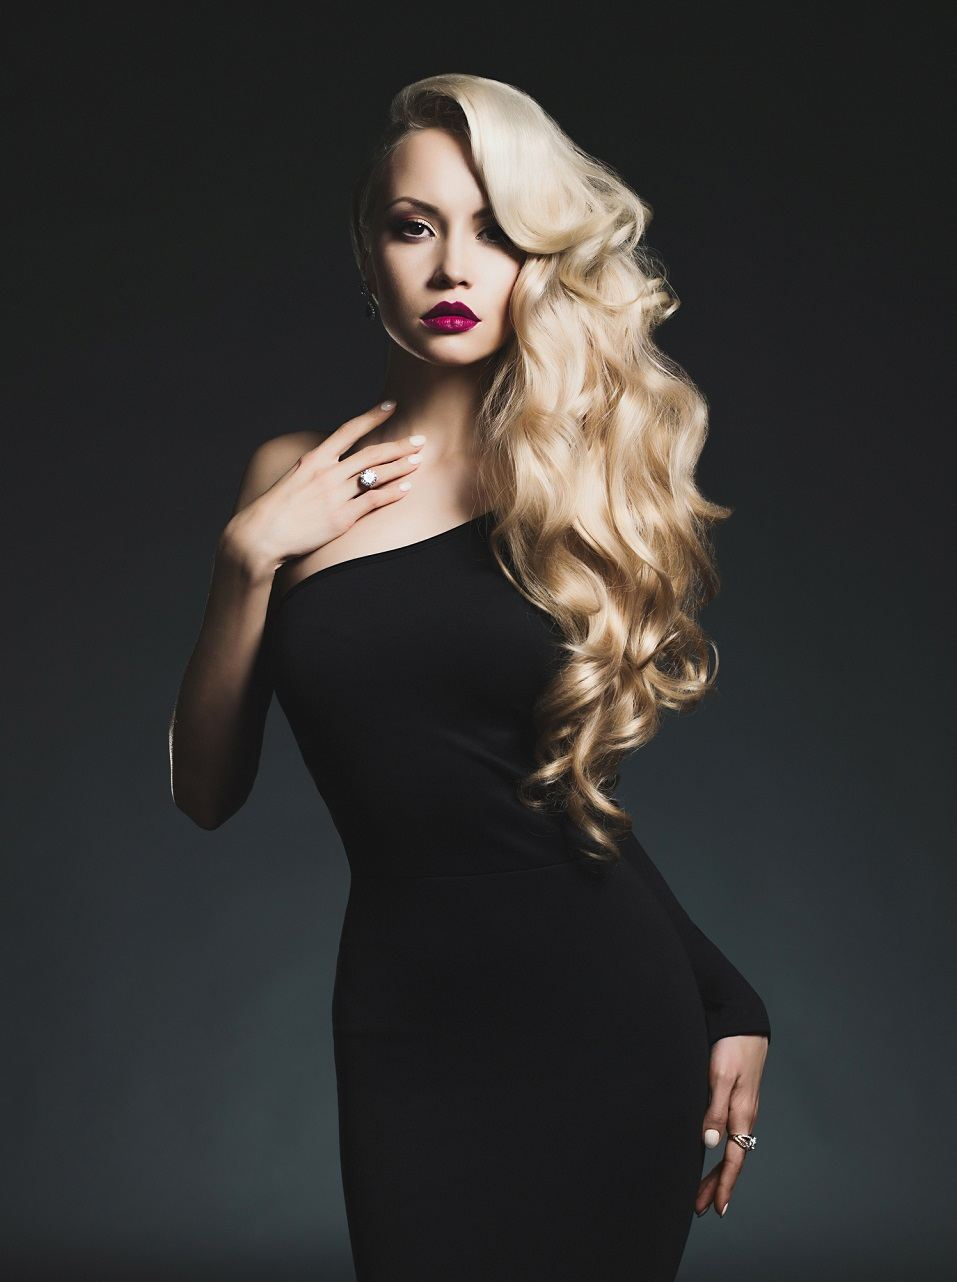 elegant blonde on black background